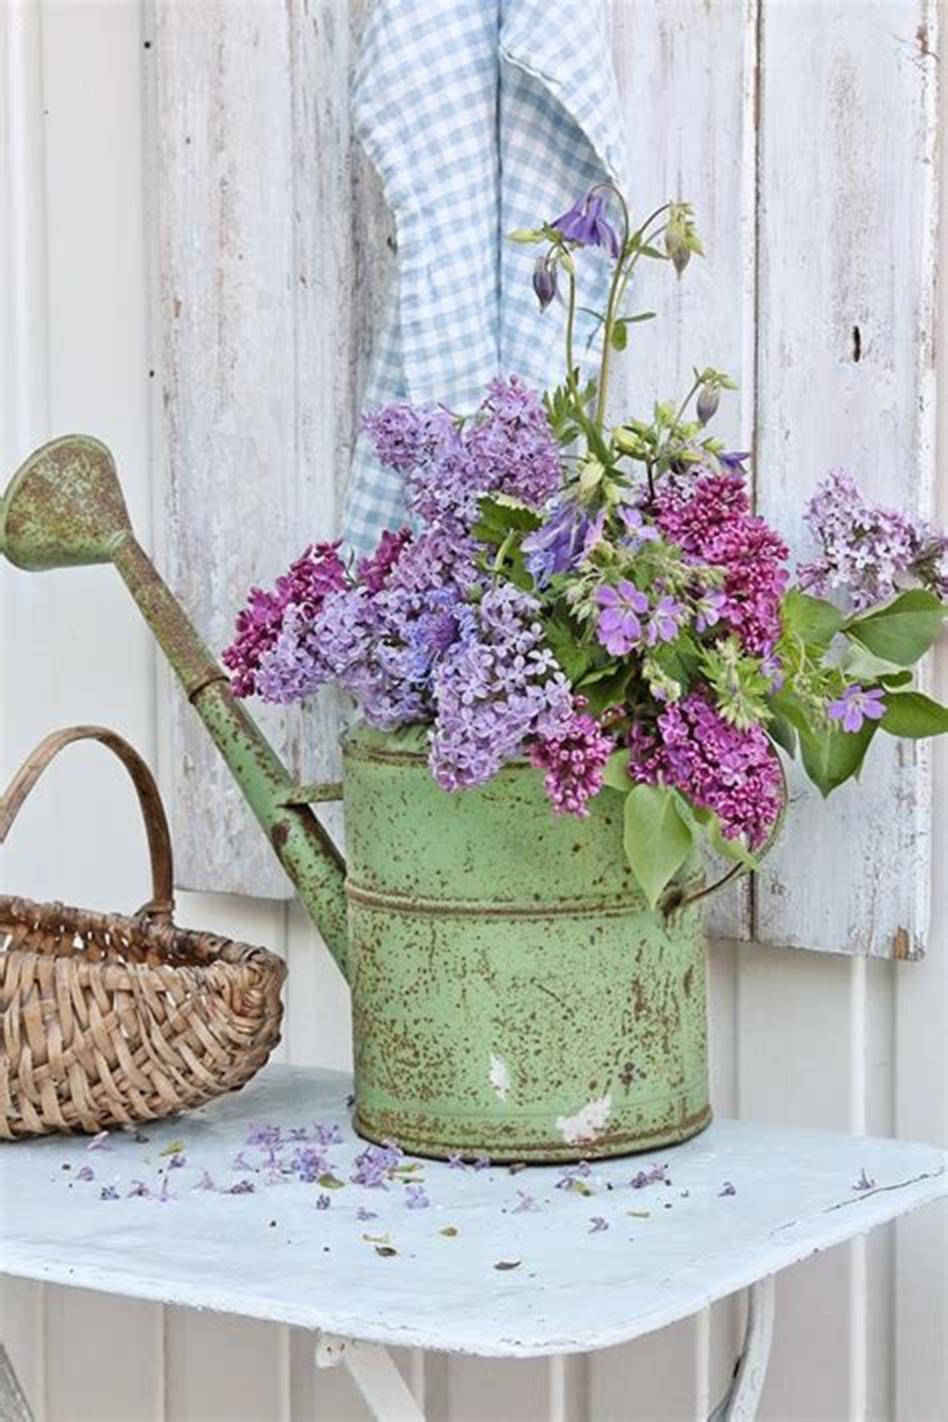 42 DIY Beautiful Vintage Spring Decorations Ideas You Will Love 19